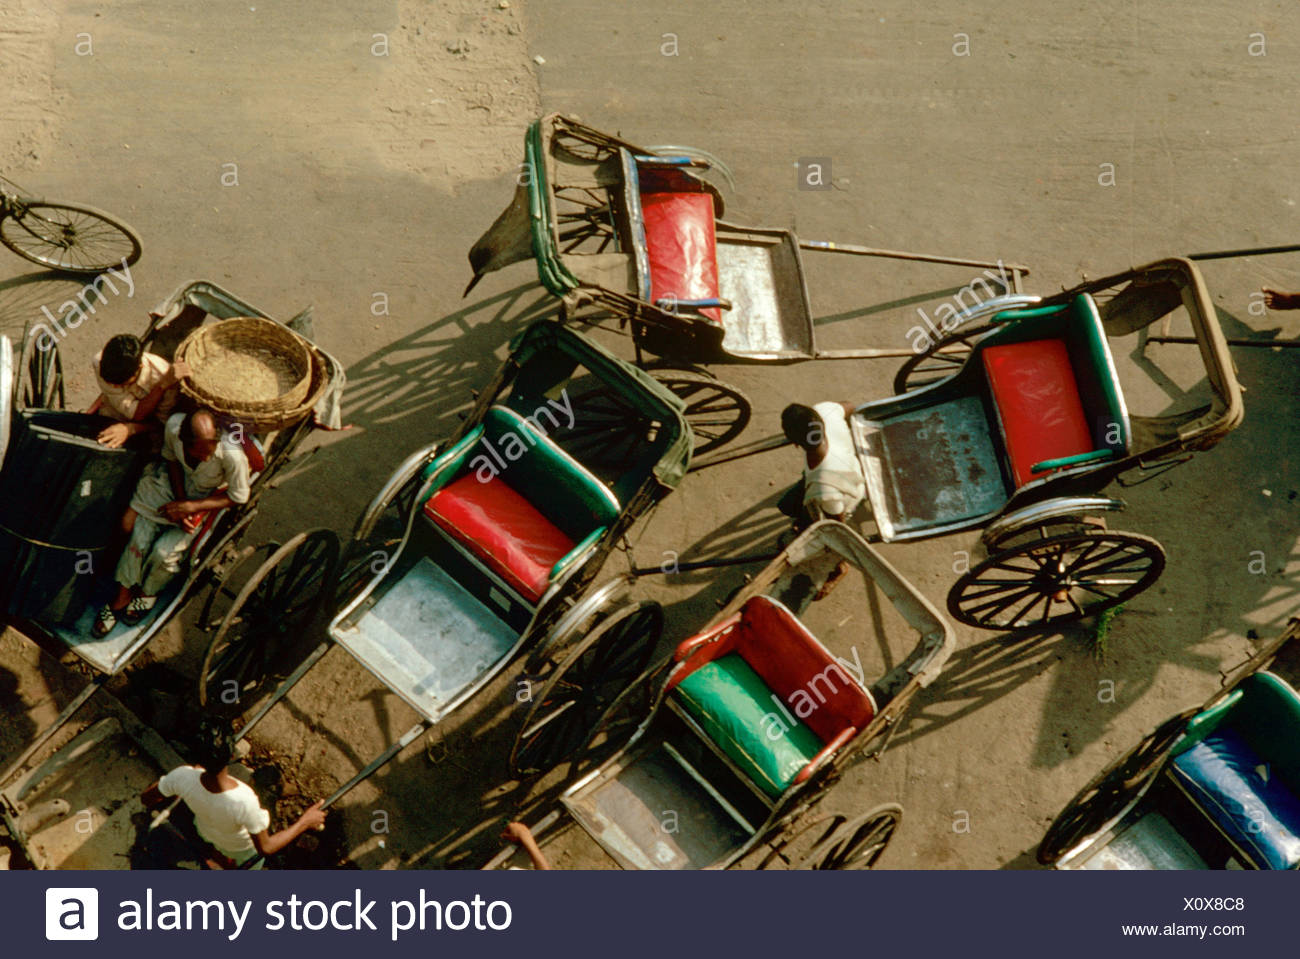 Rickshaws - Stock Image